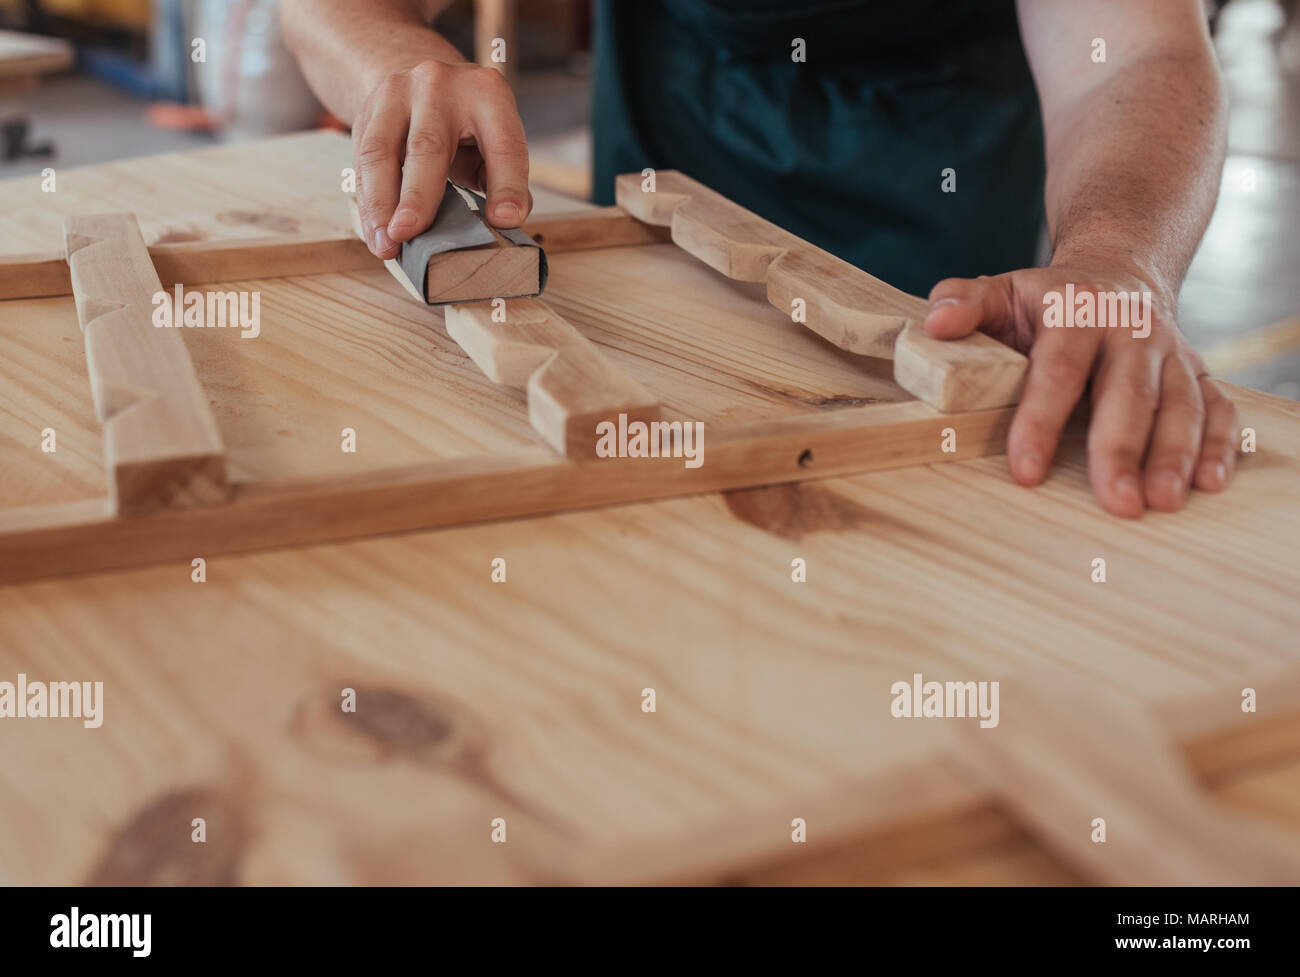 Hands of craftsman sanding a piece of wood in workshop - Stock Image